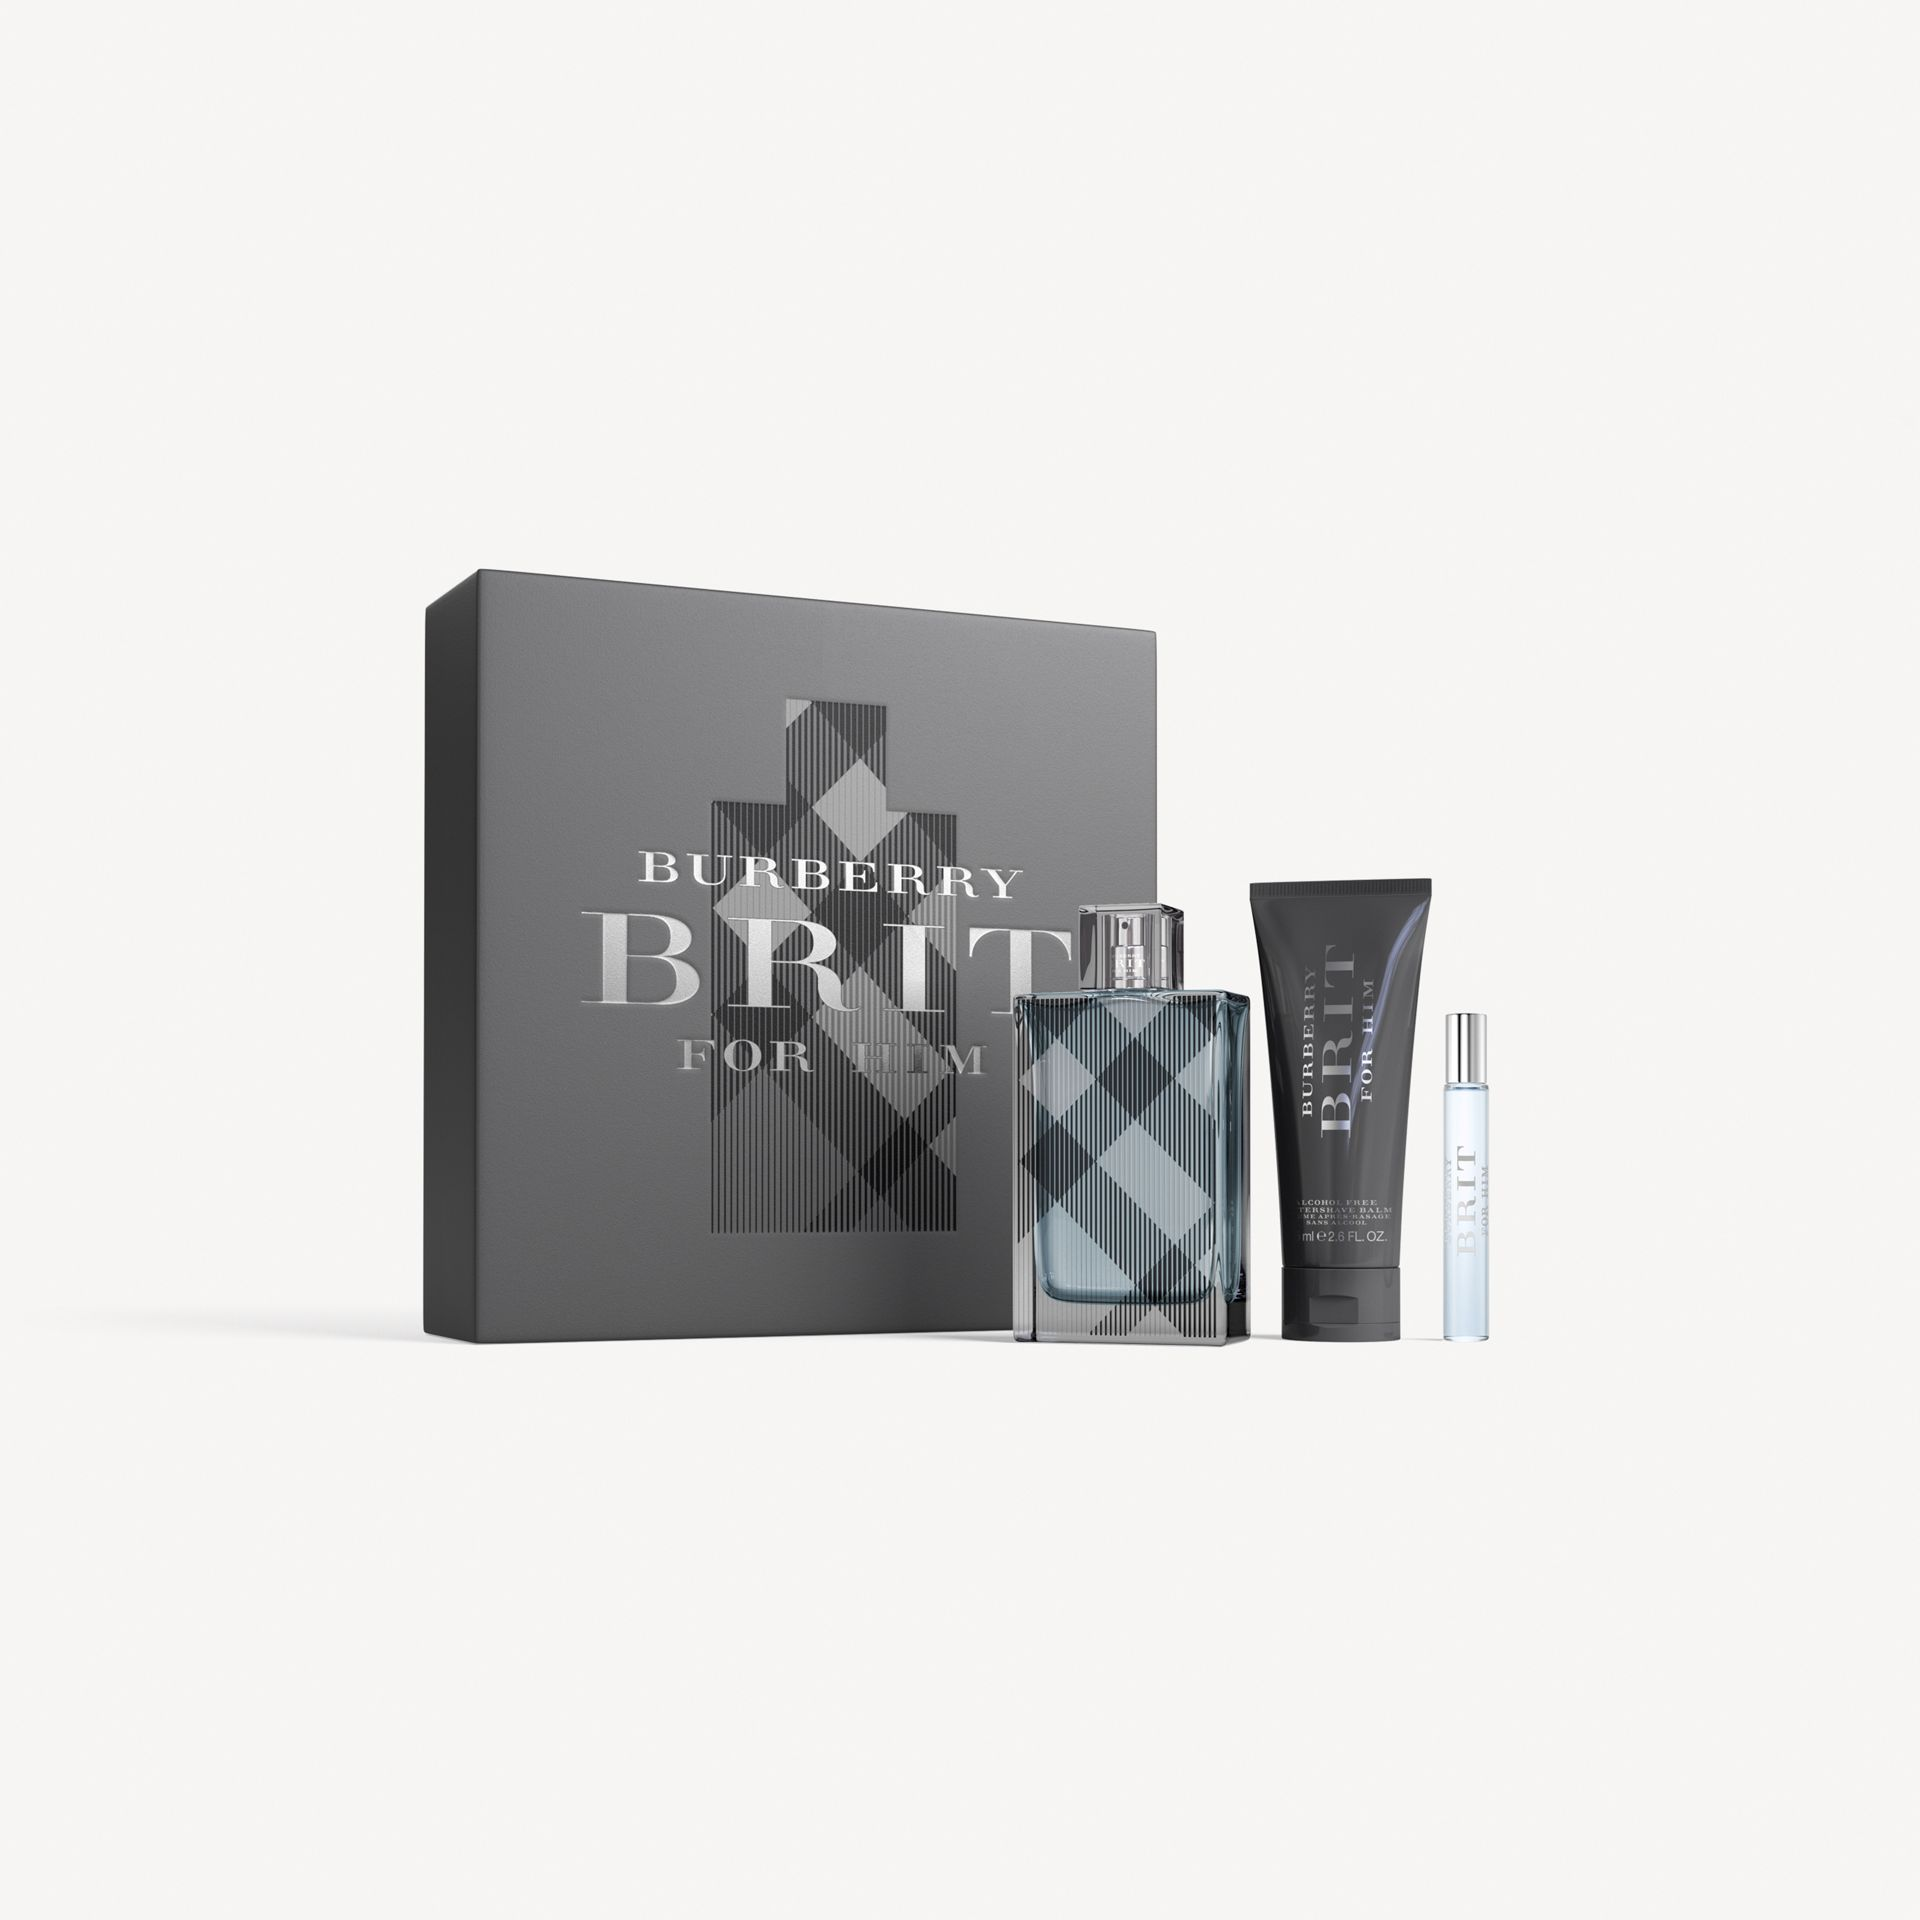 Burberry Brit for Him Eau de Toilette Set - gallery image 1